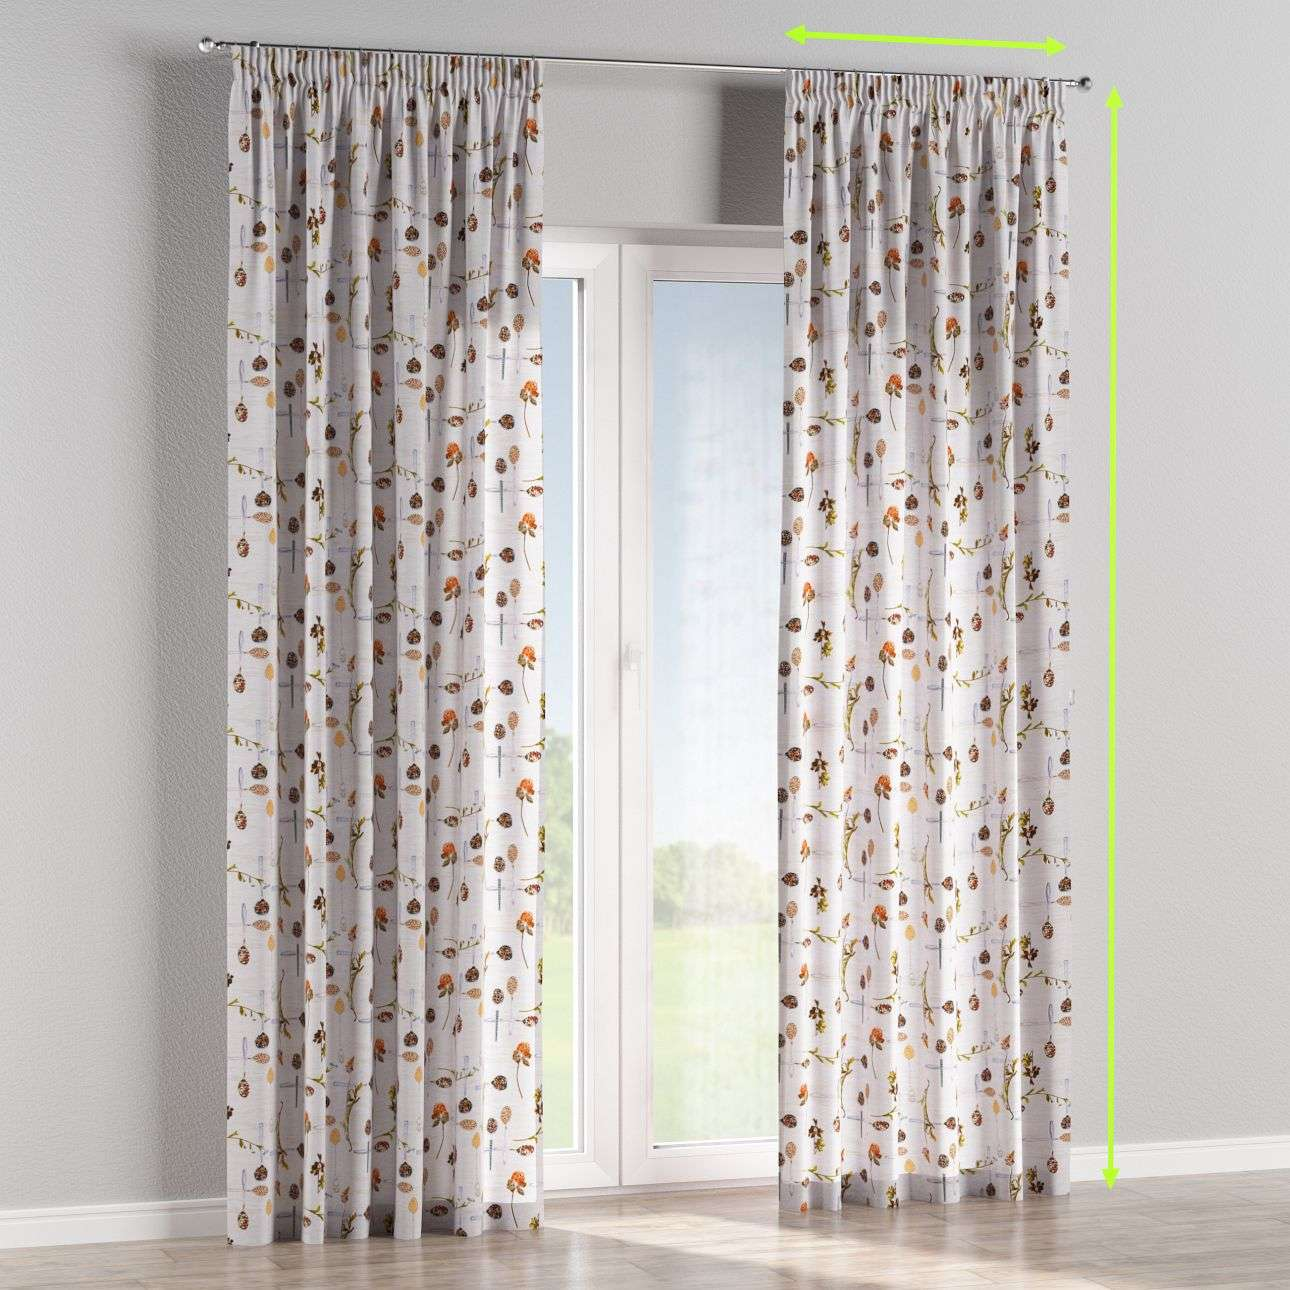 Pencil pleat curtains in collection Flowers, fabric: 140-11